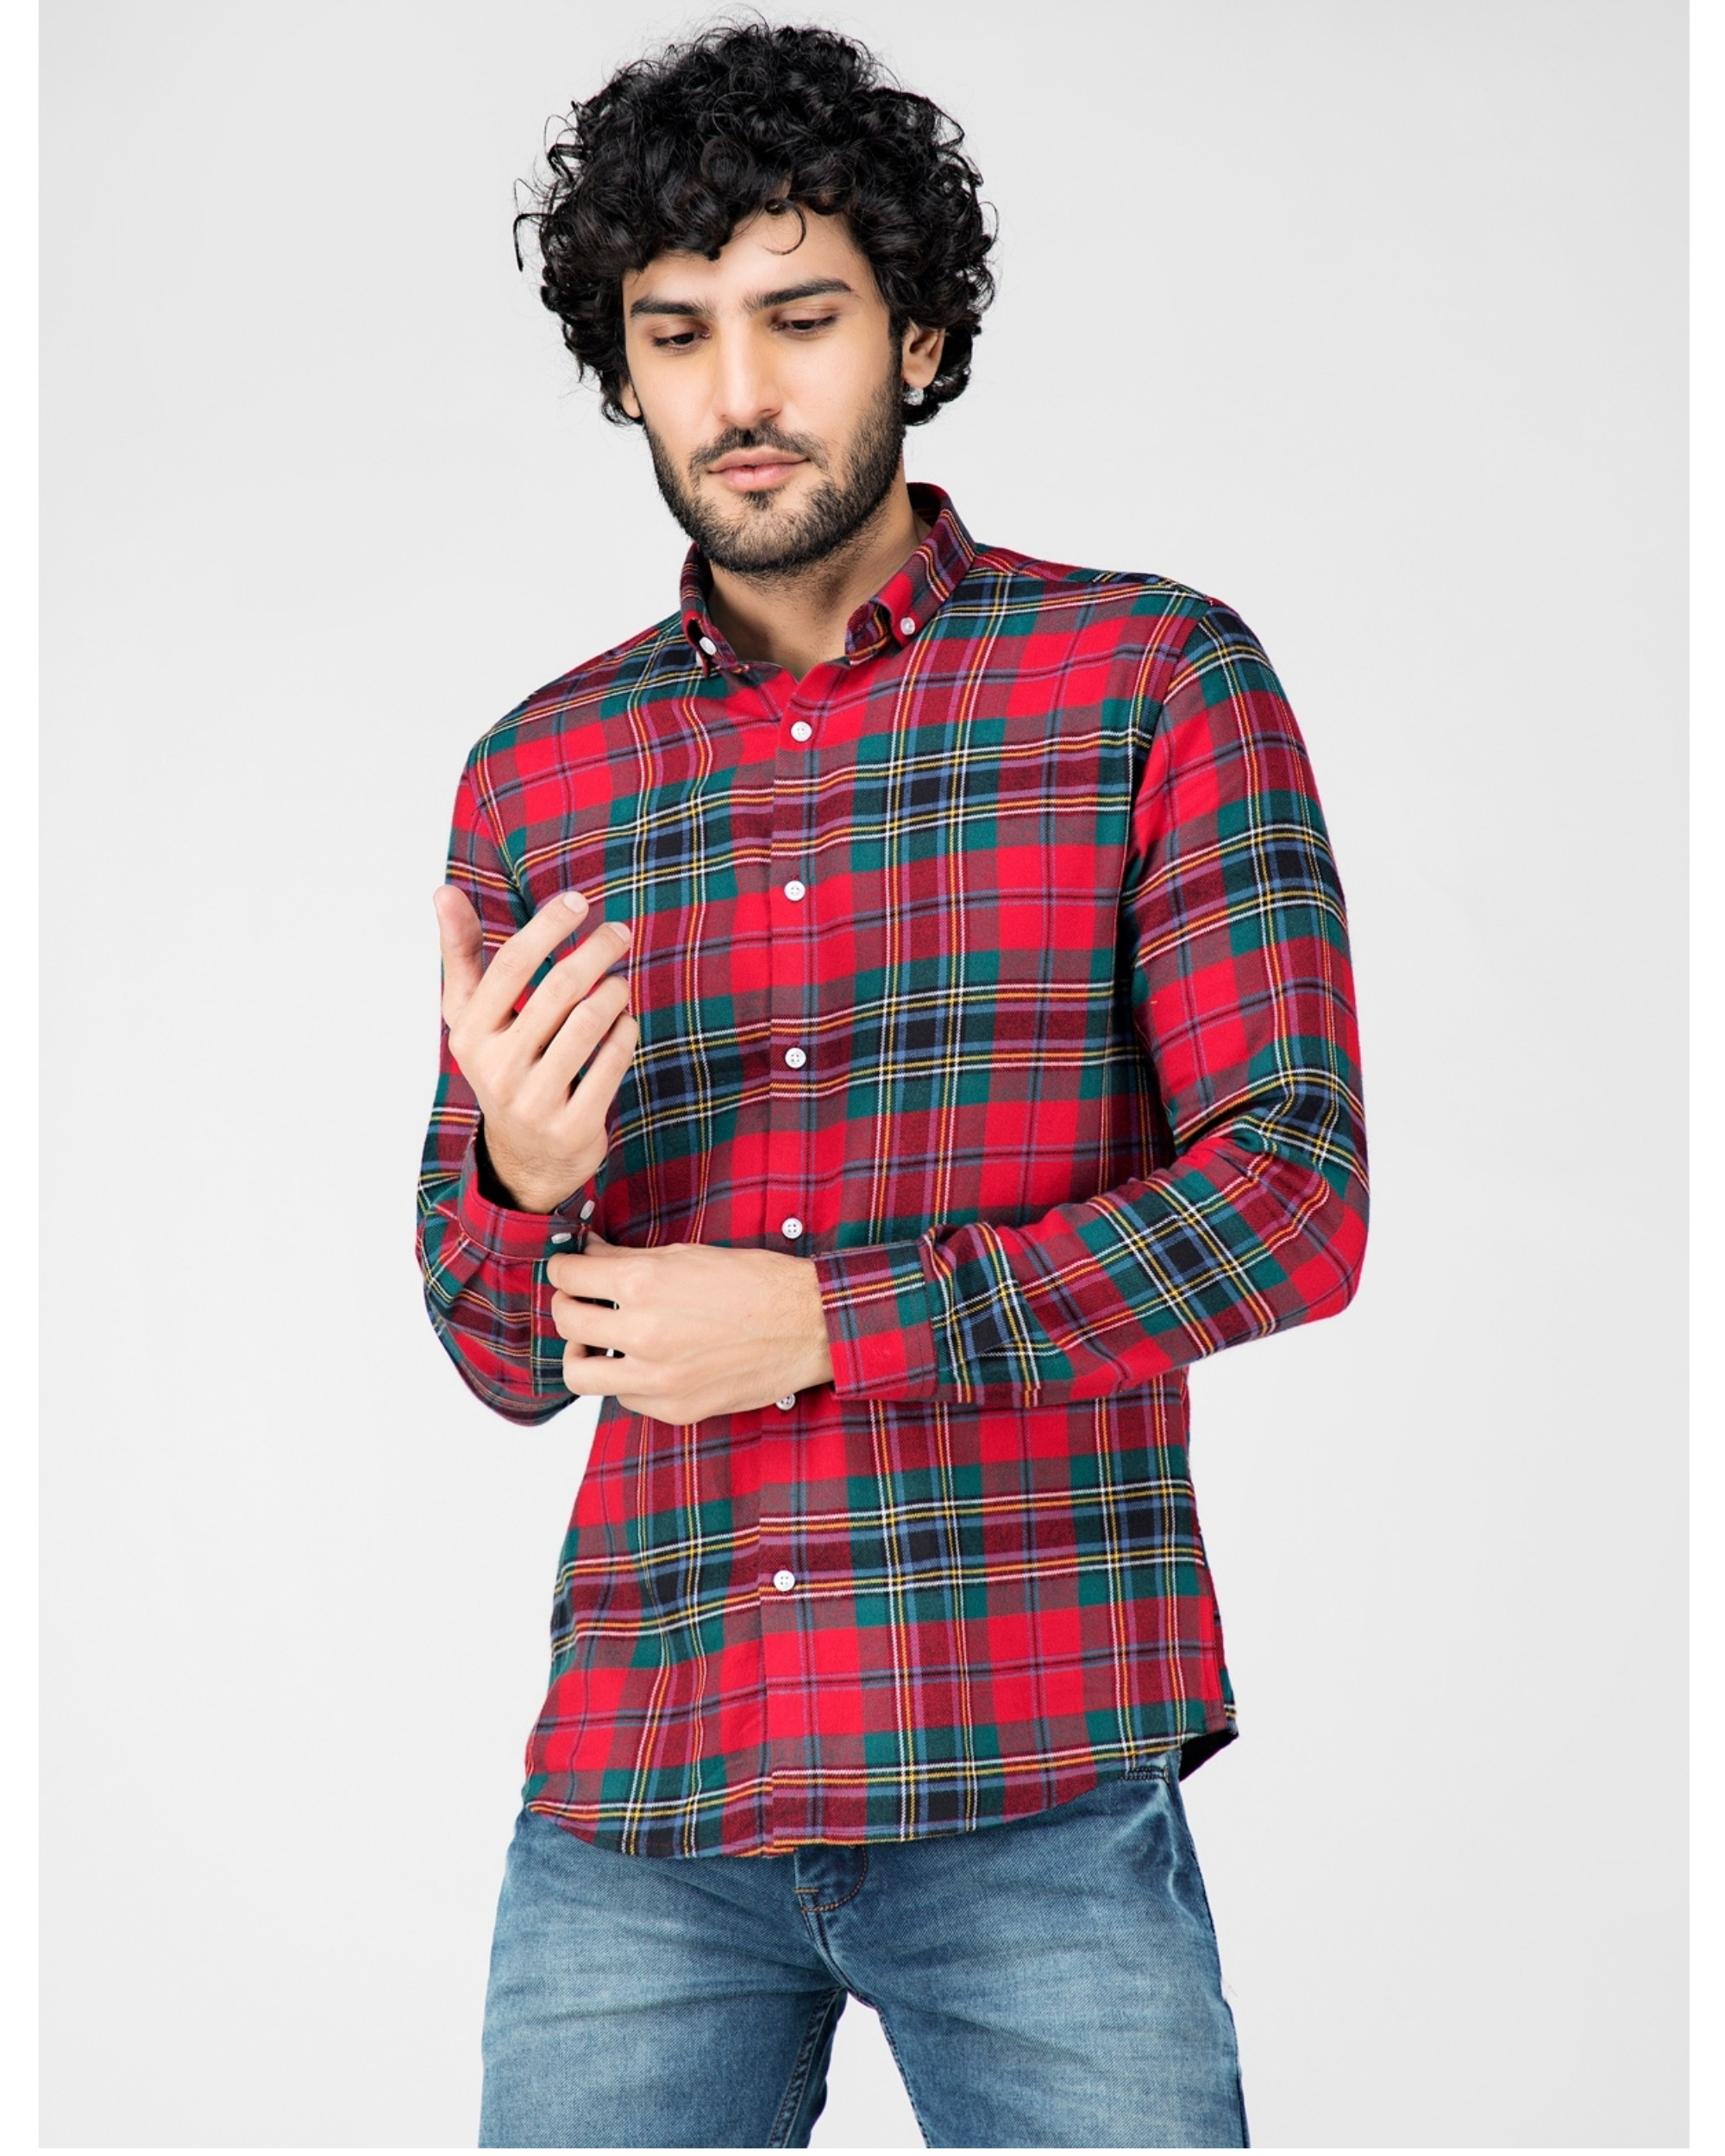 Red and green school plaid shirt